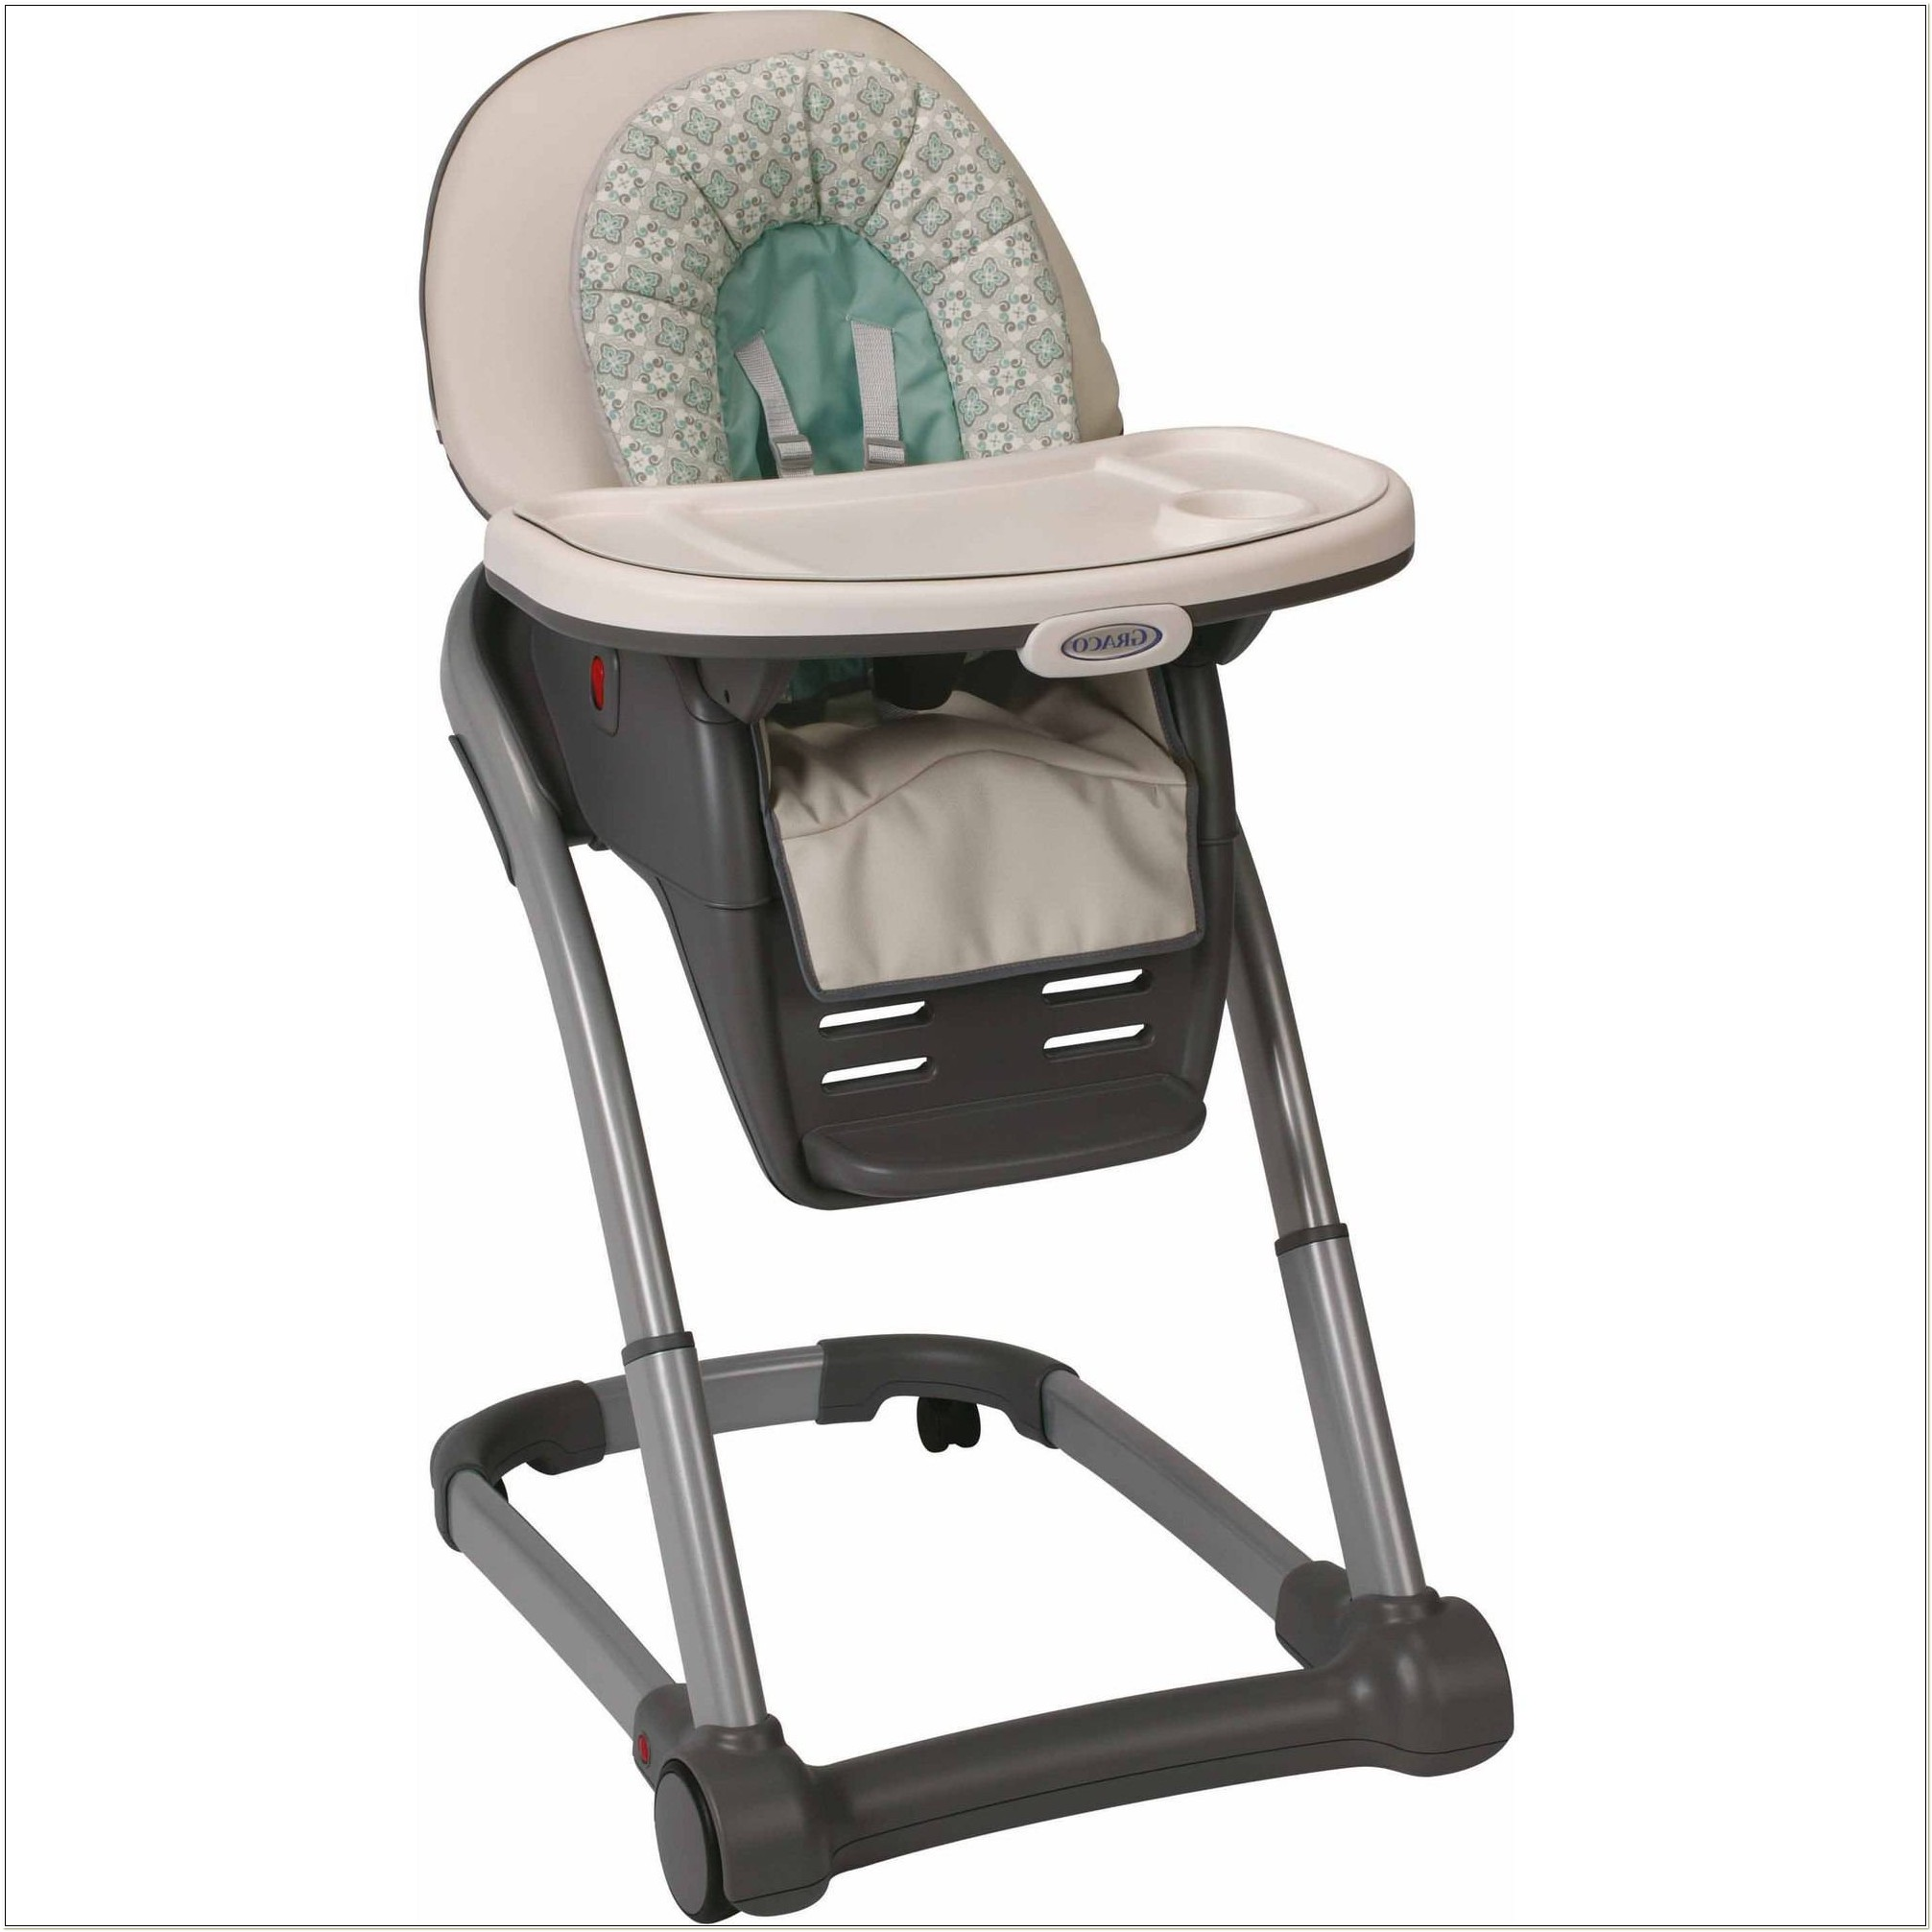 Graco Wooden High Chair Ebay